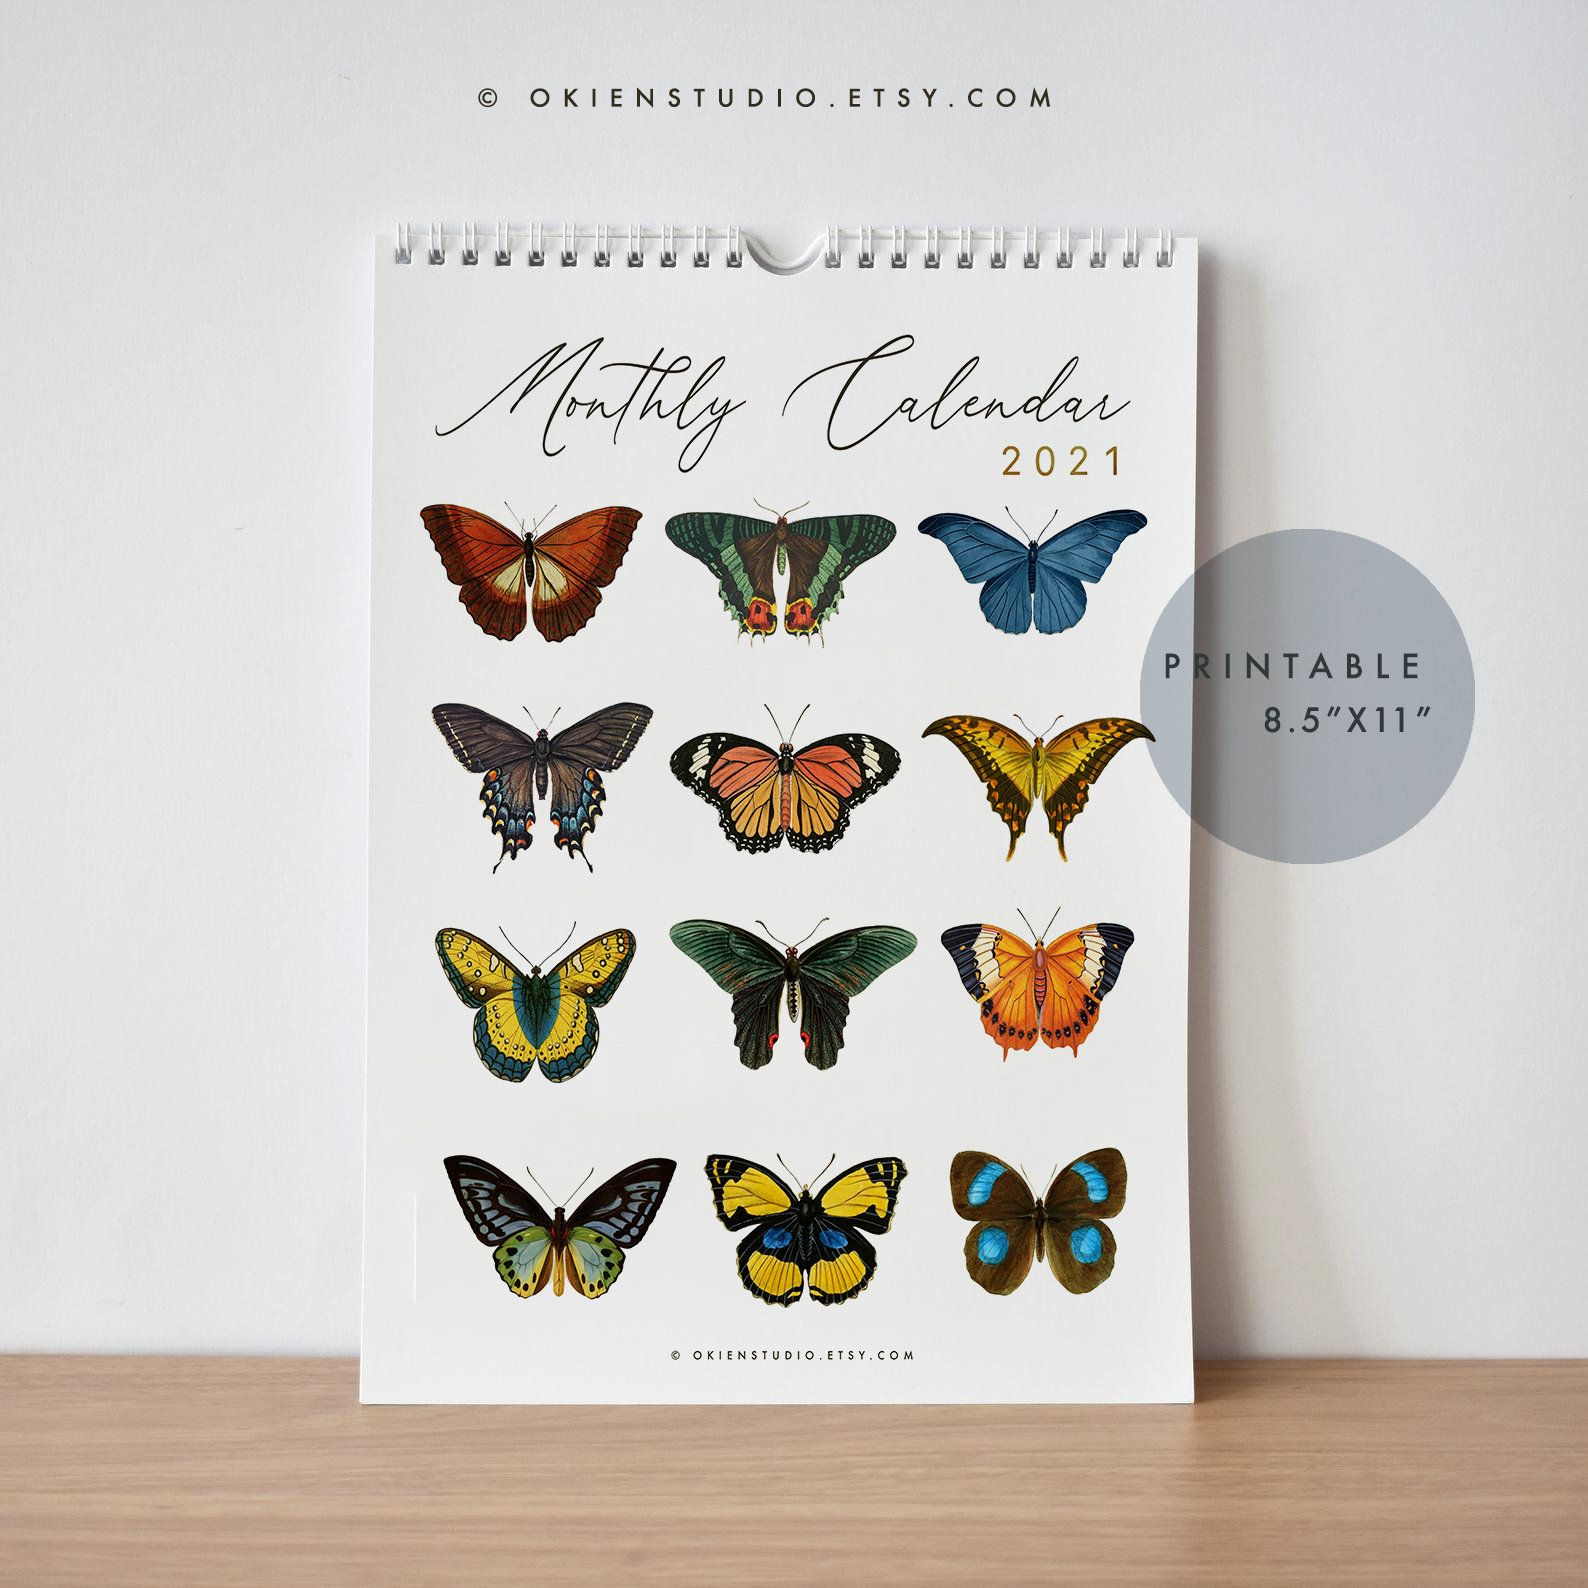 Butterflies Calendar 2021 Calendar Printable Butterflies And